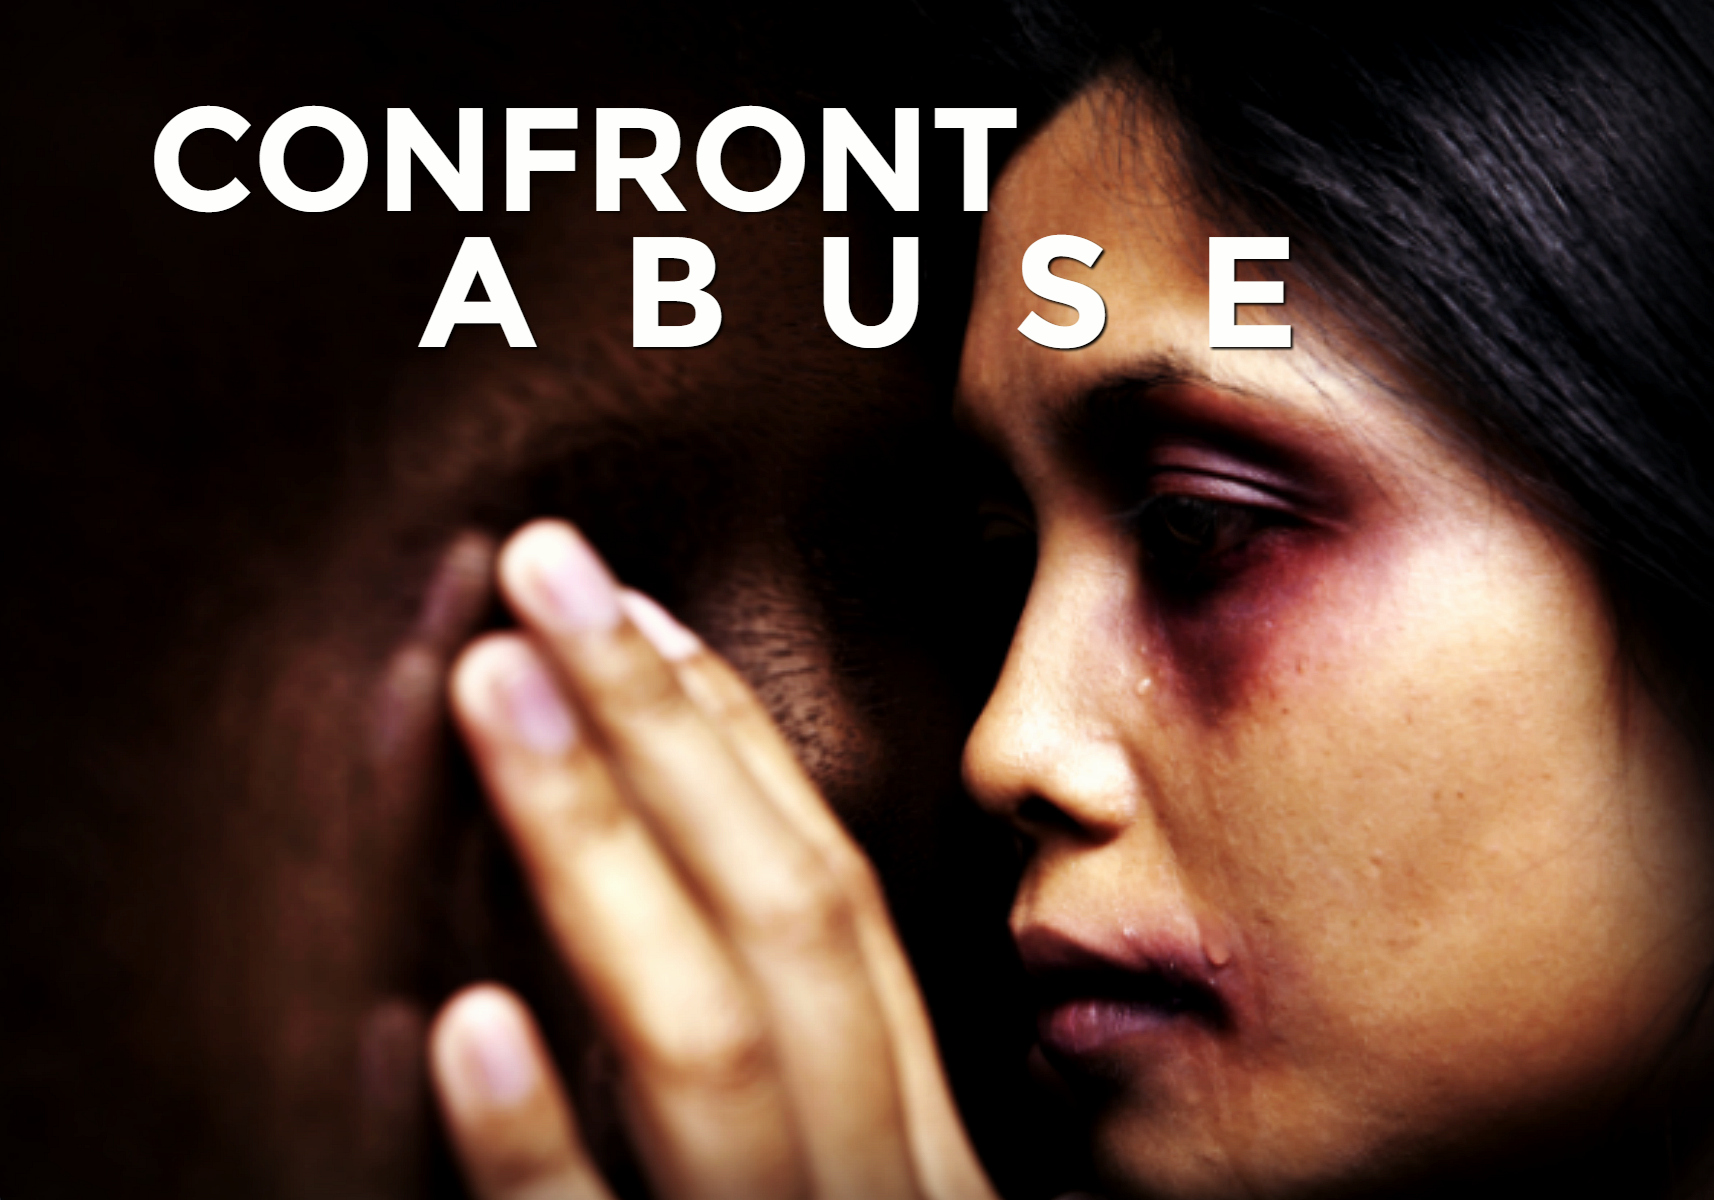 CONFRONT ABUSE